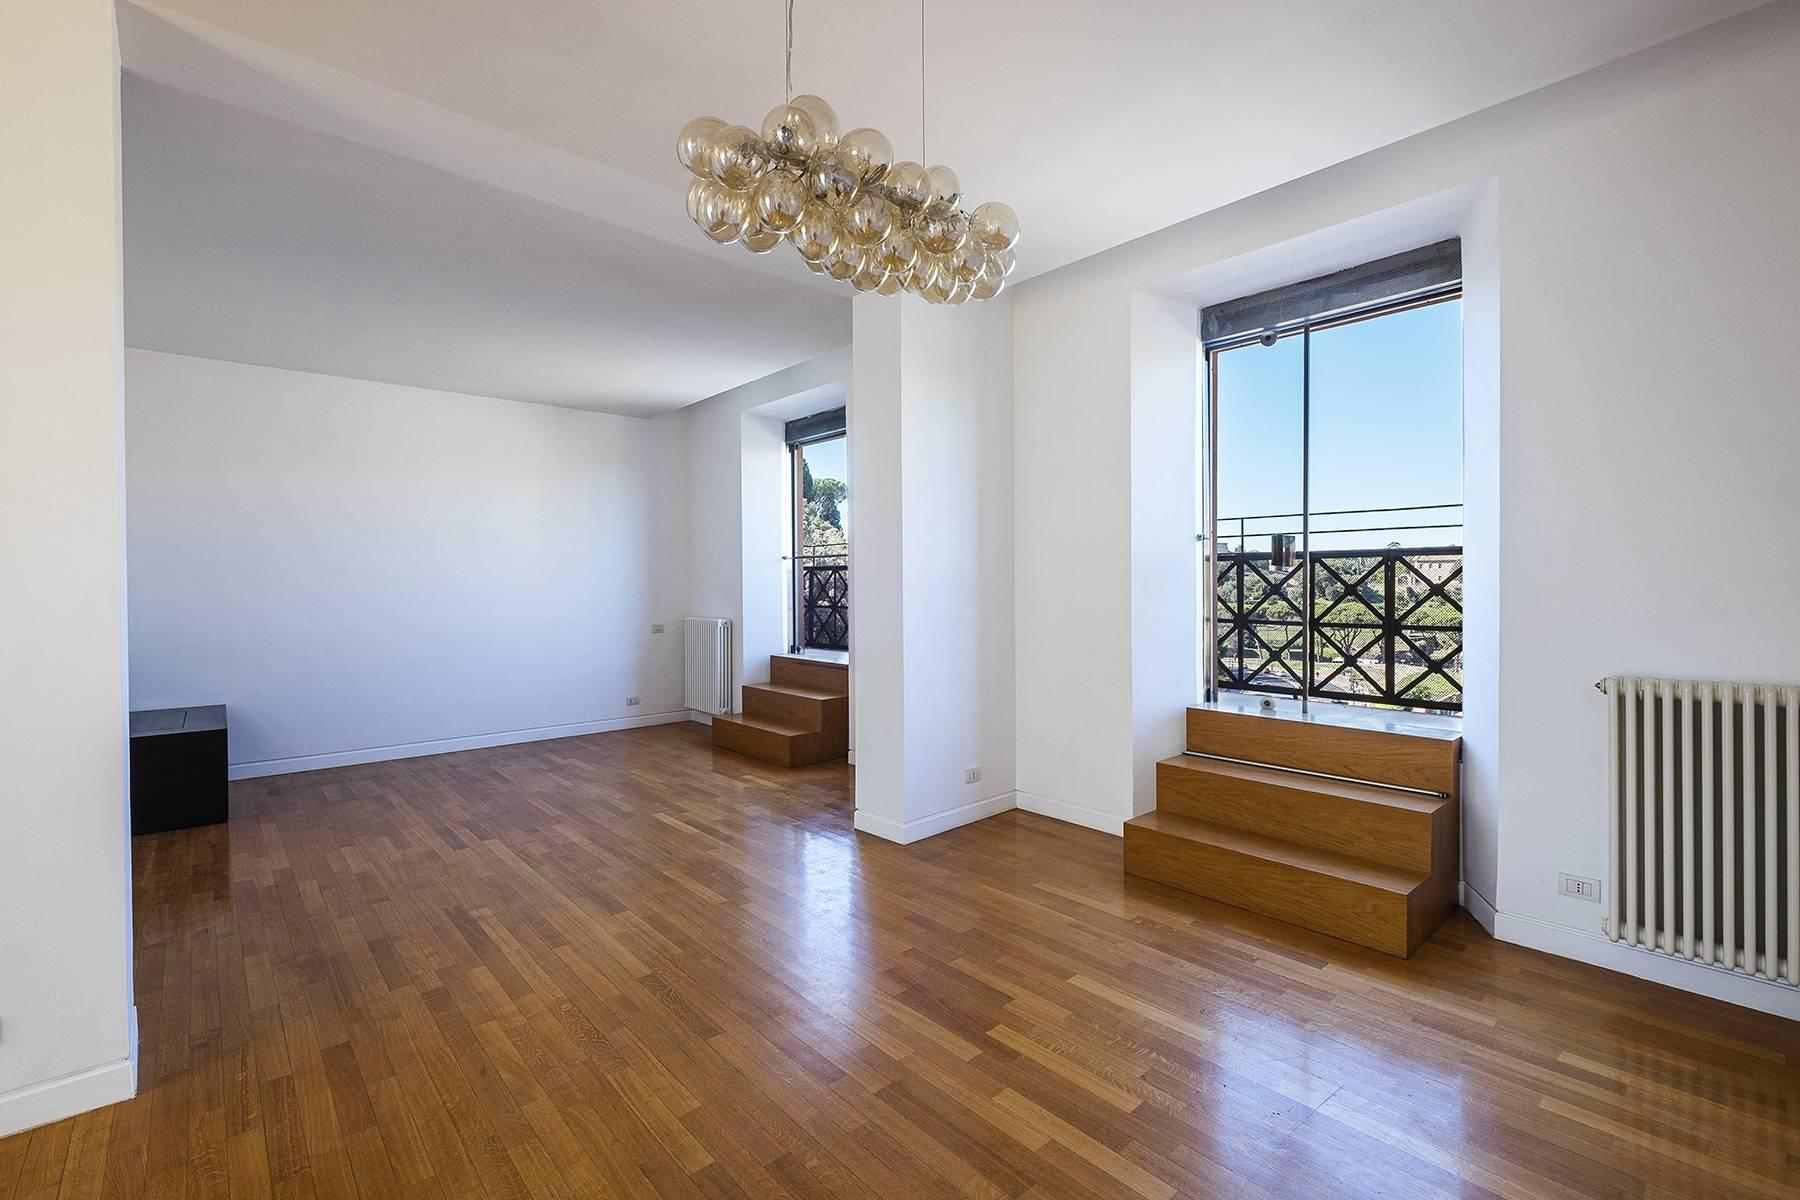 Charming apartment with a fine view of the Colosseum - 6